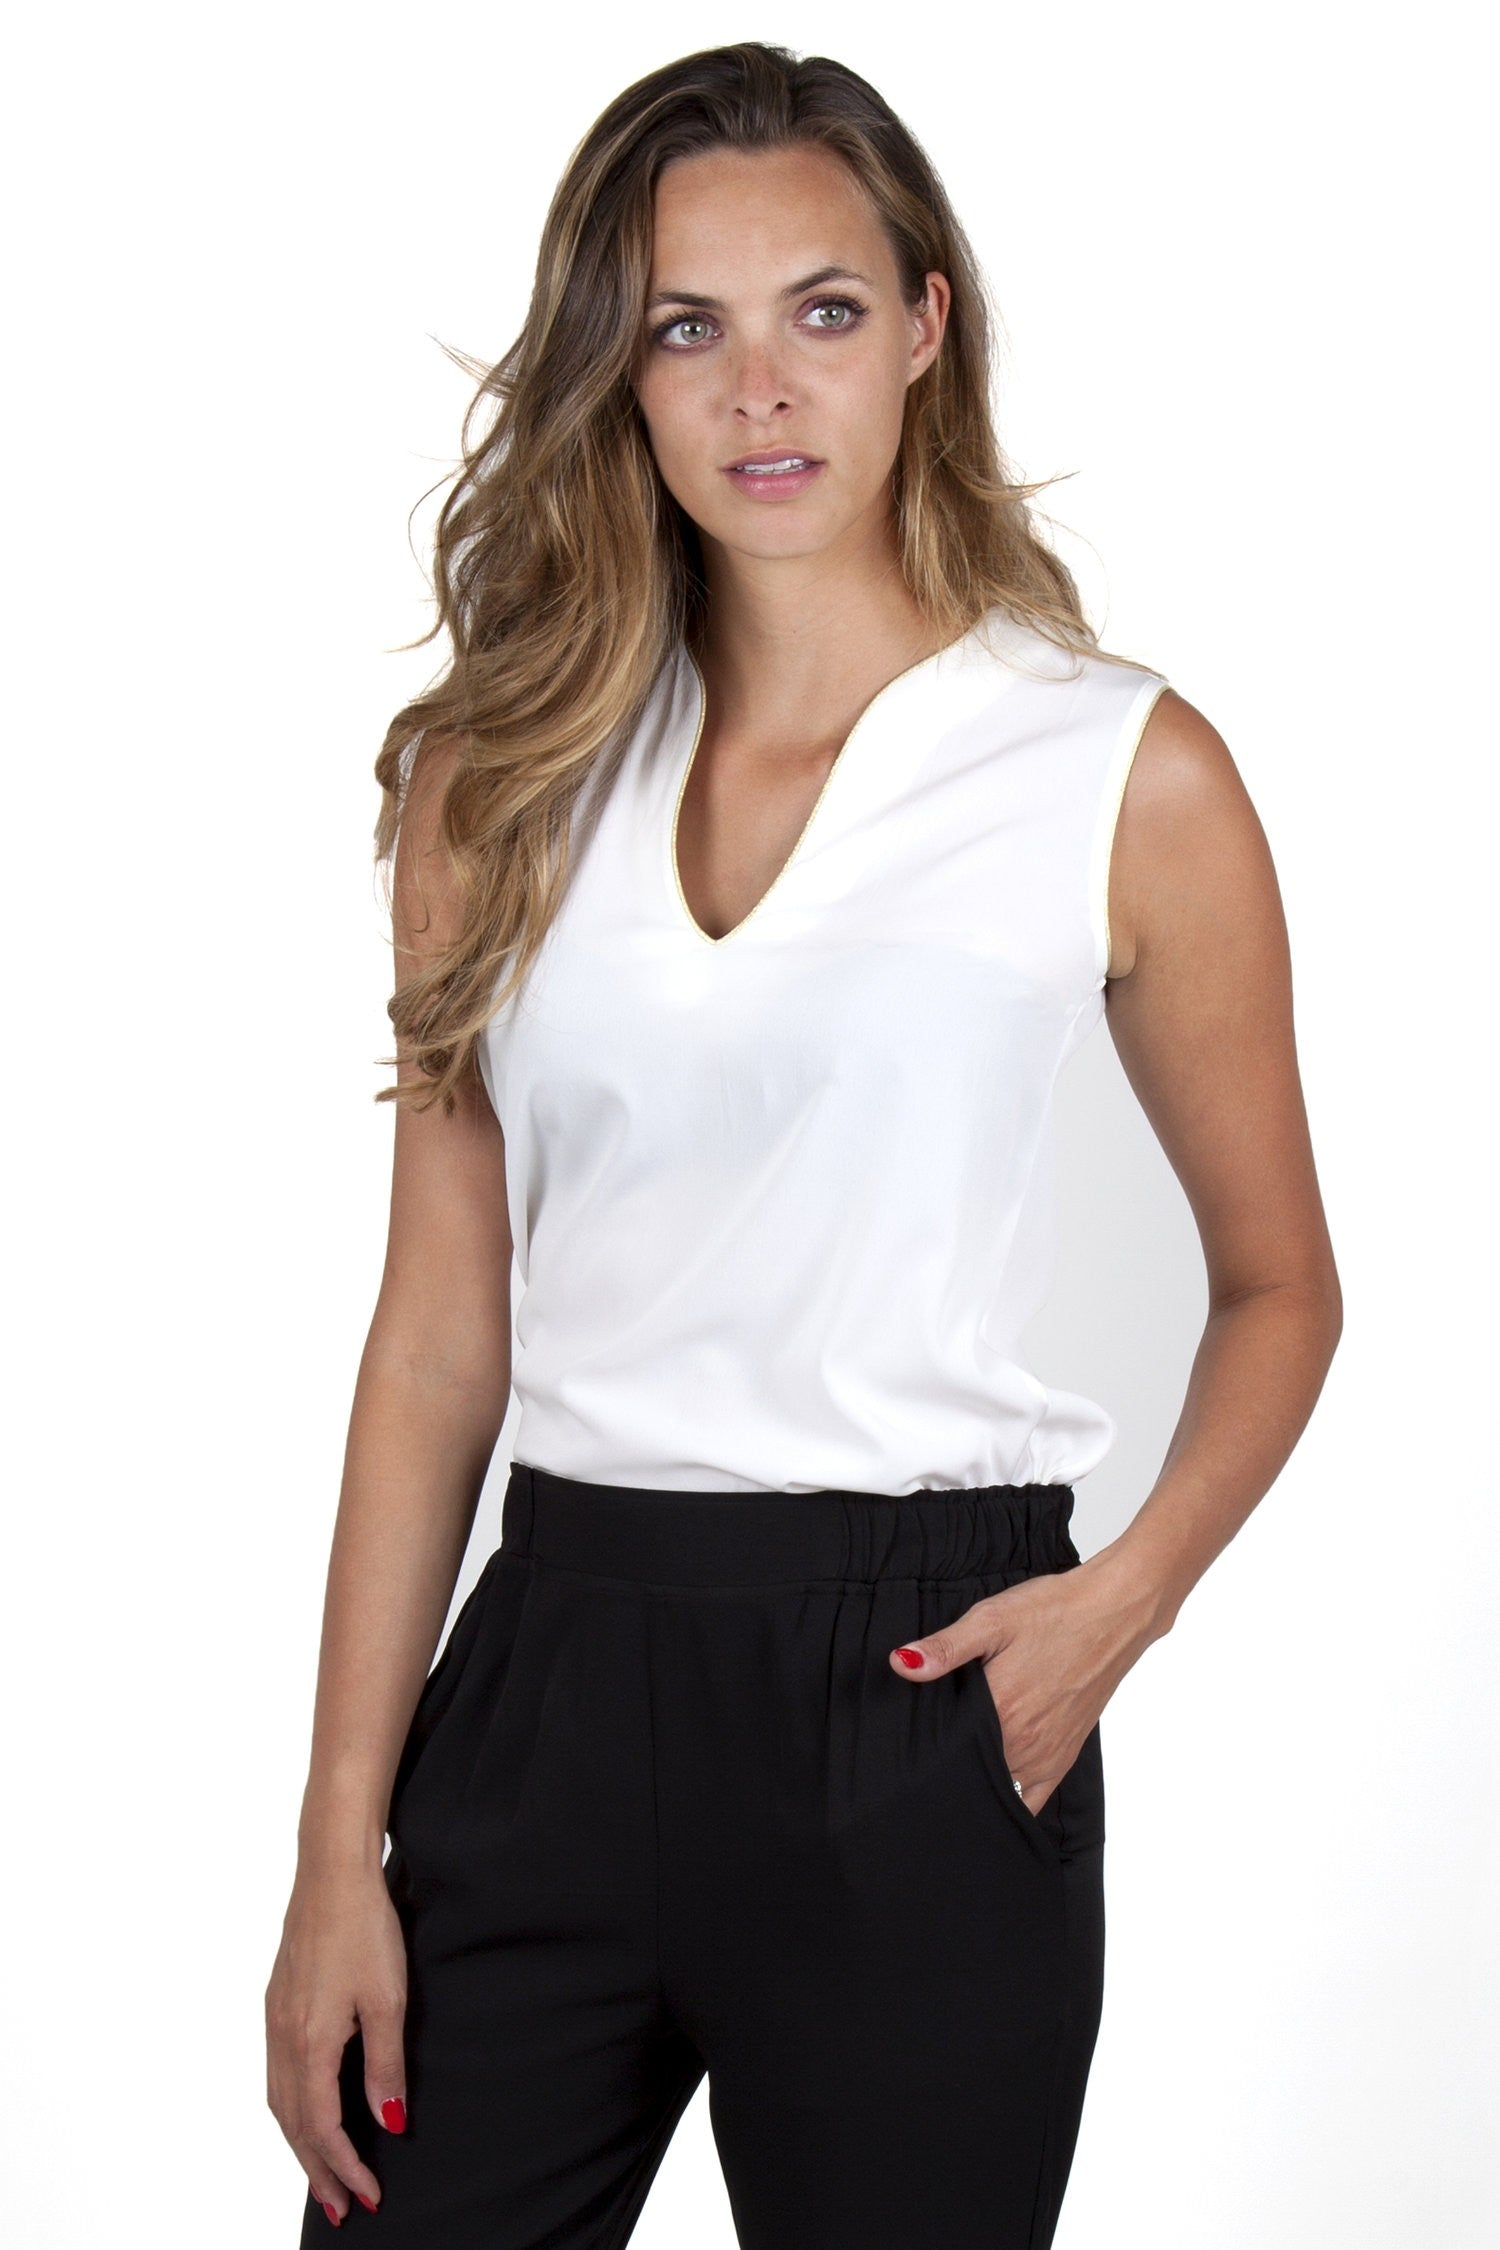 Ina White Top Capsule Collection By Juliette - Tops Capsule Collection By Juliette